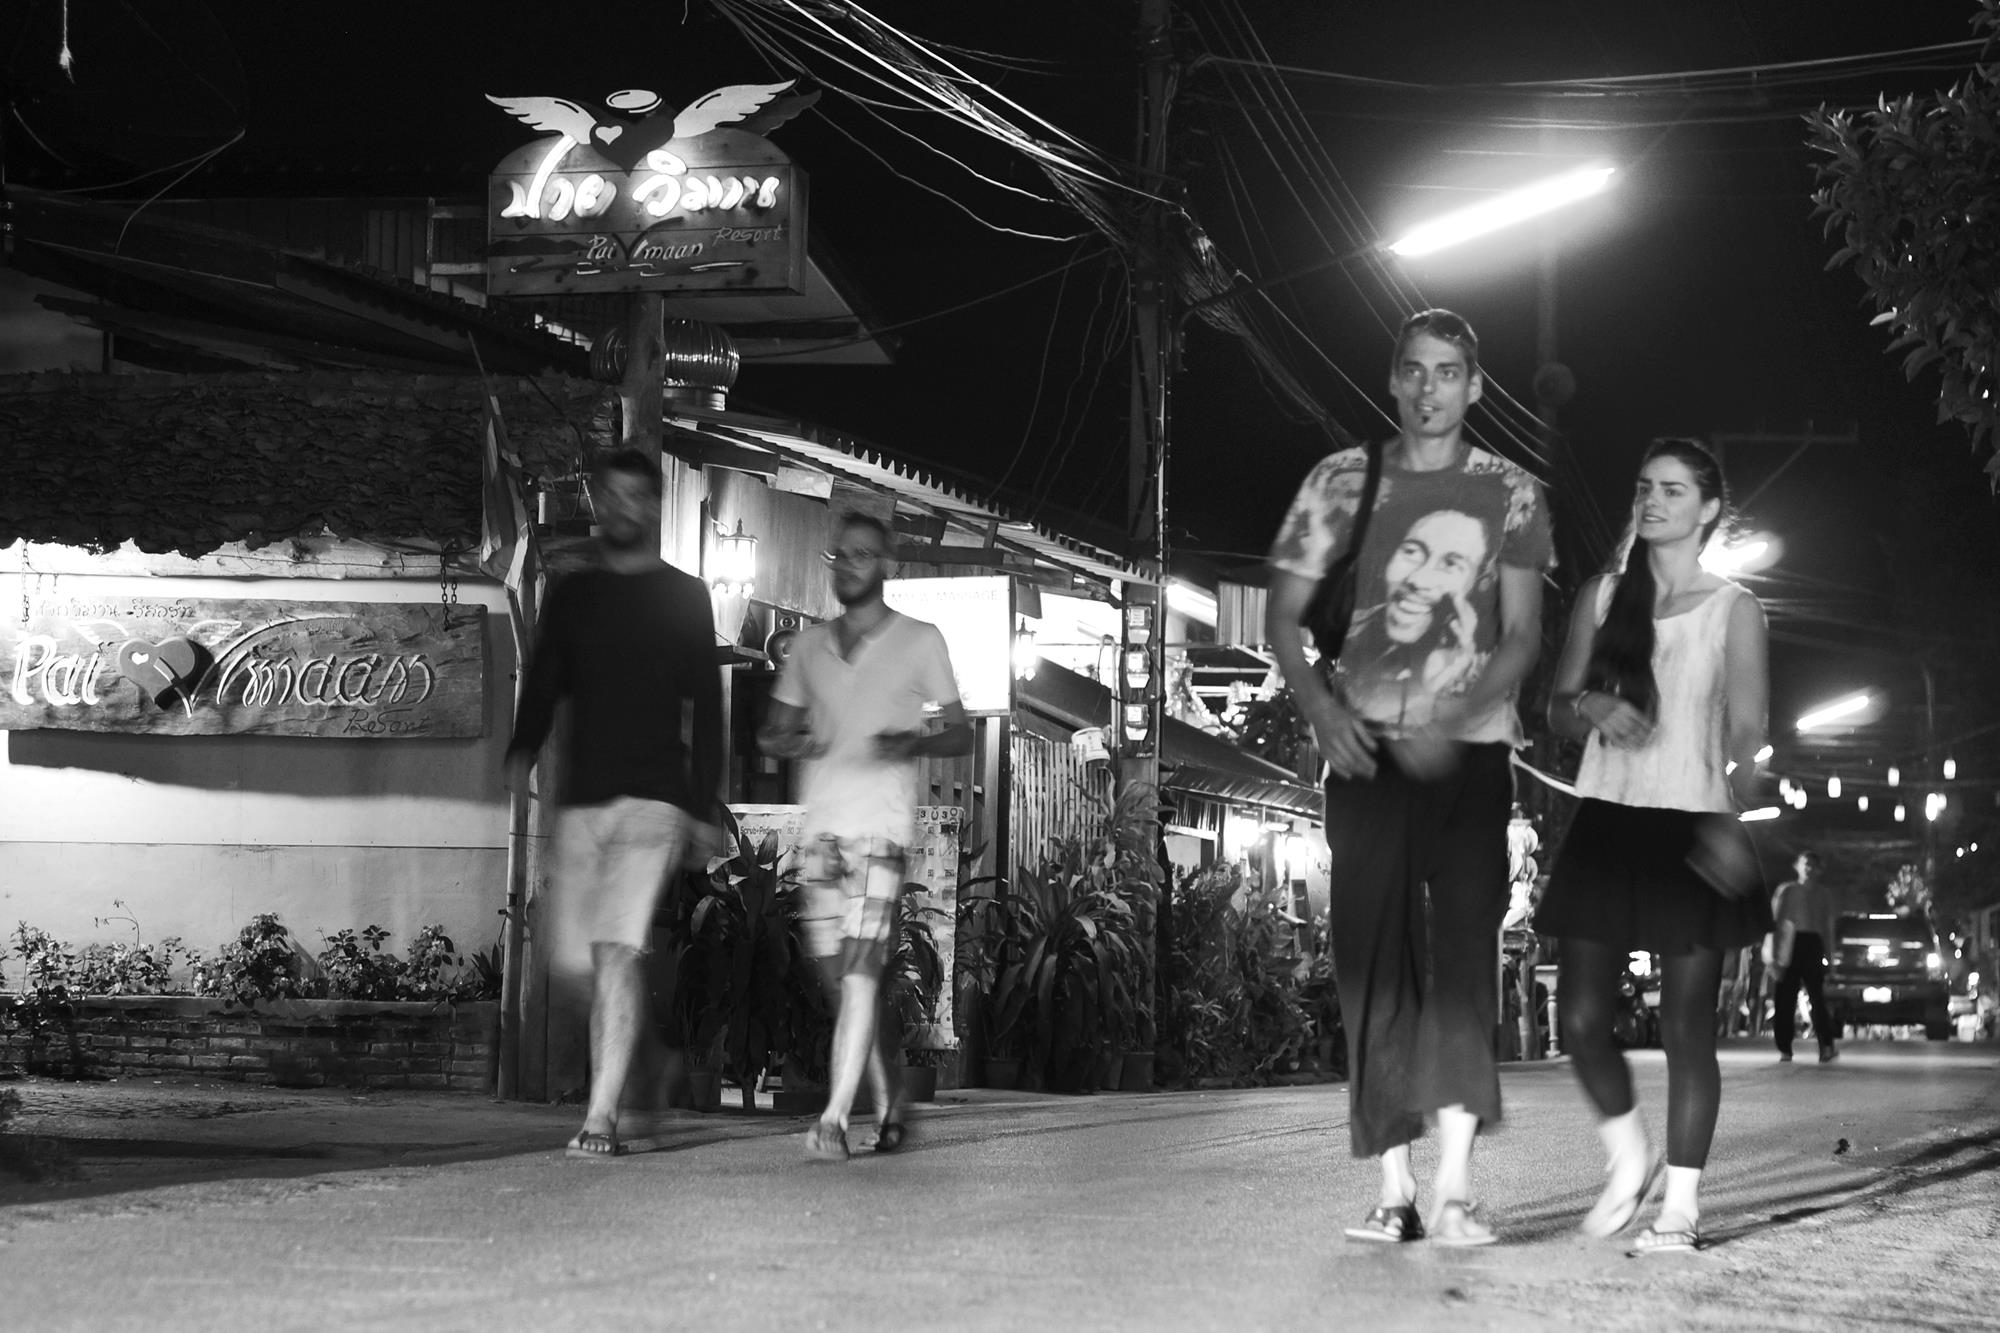 pai night street